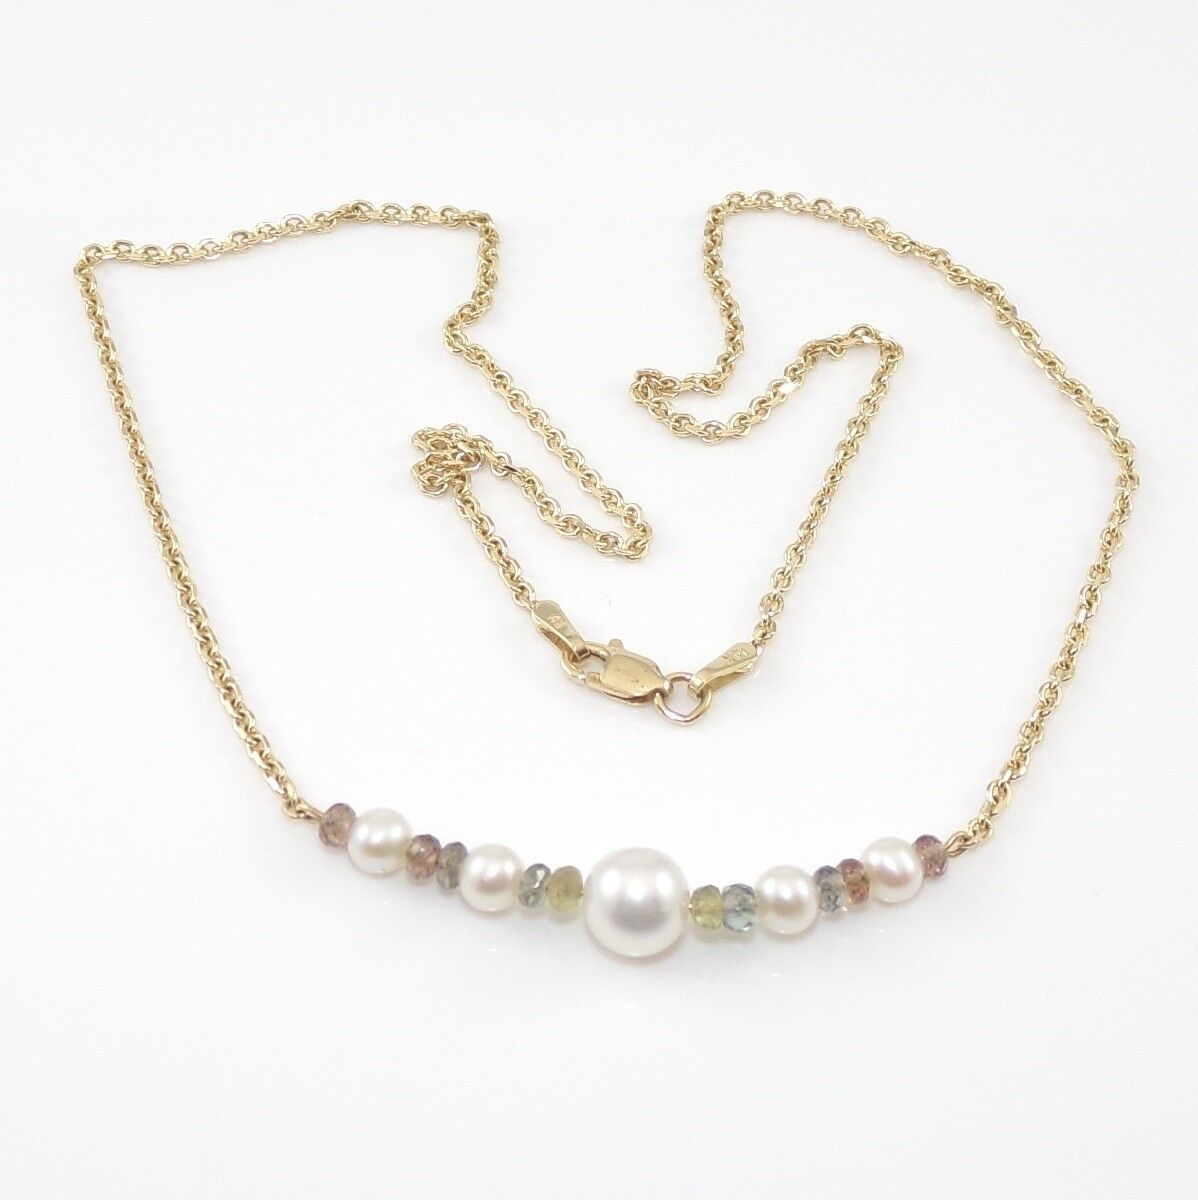 Necklace Choker Pearl Bead Gold Cable Chain Minimal Jewelry 14-20 Inches Bride